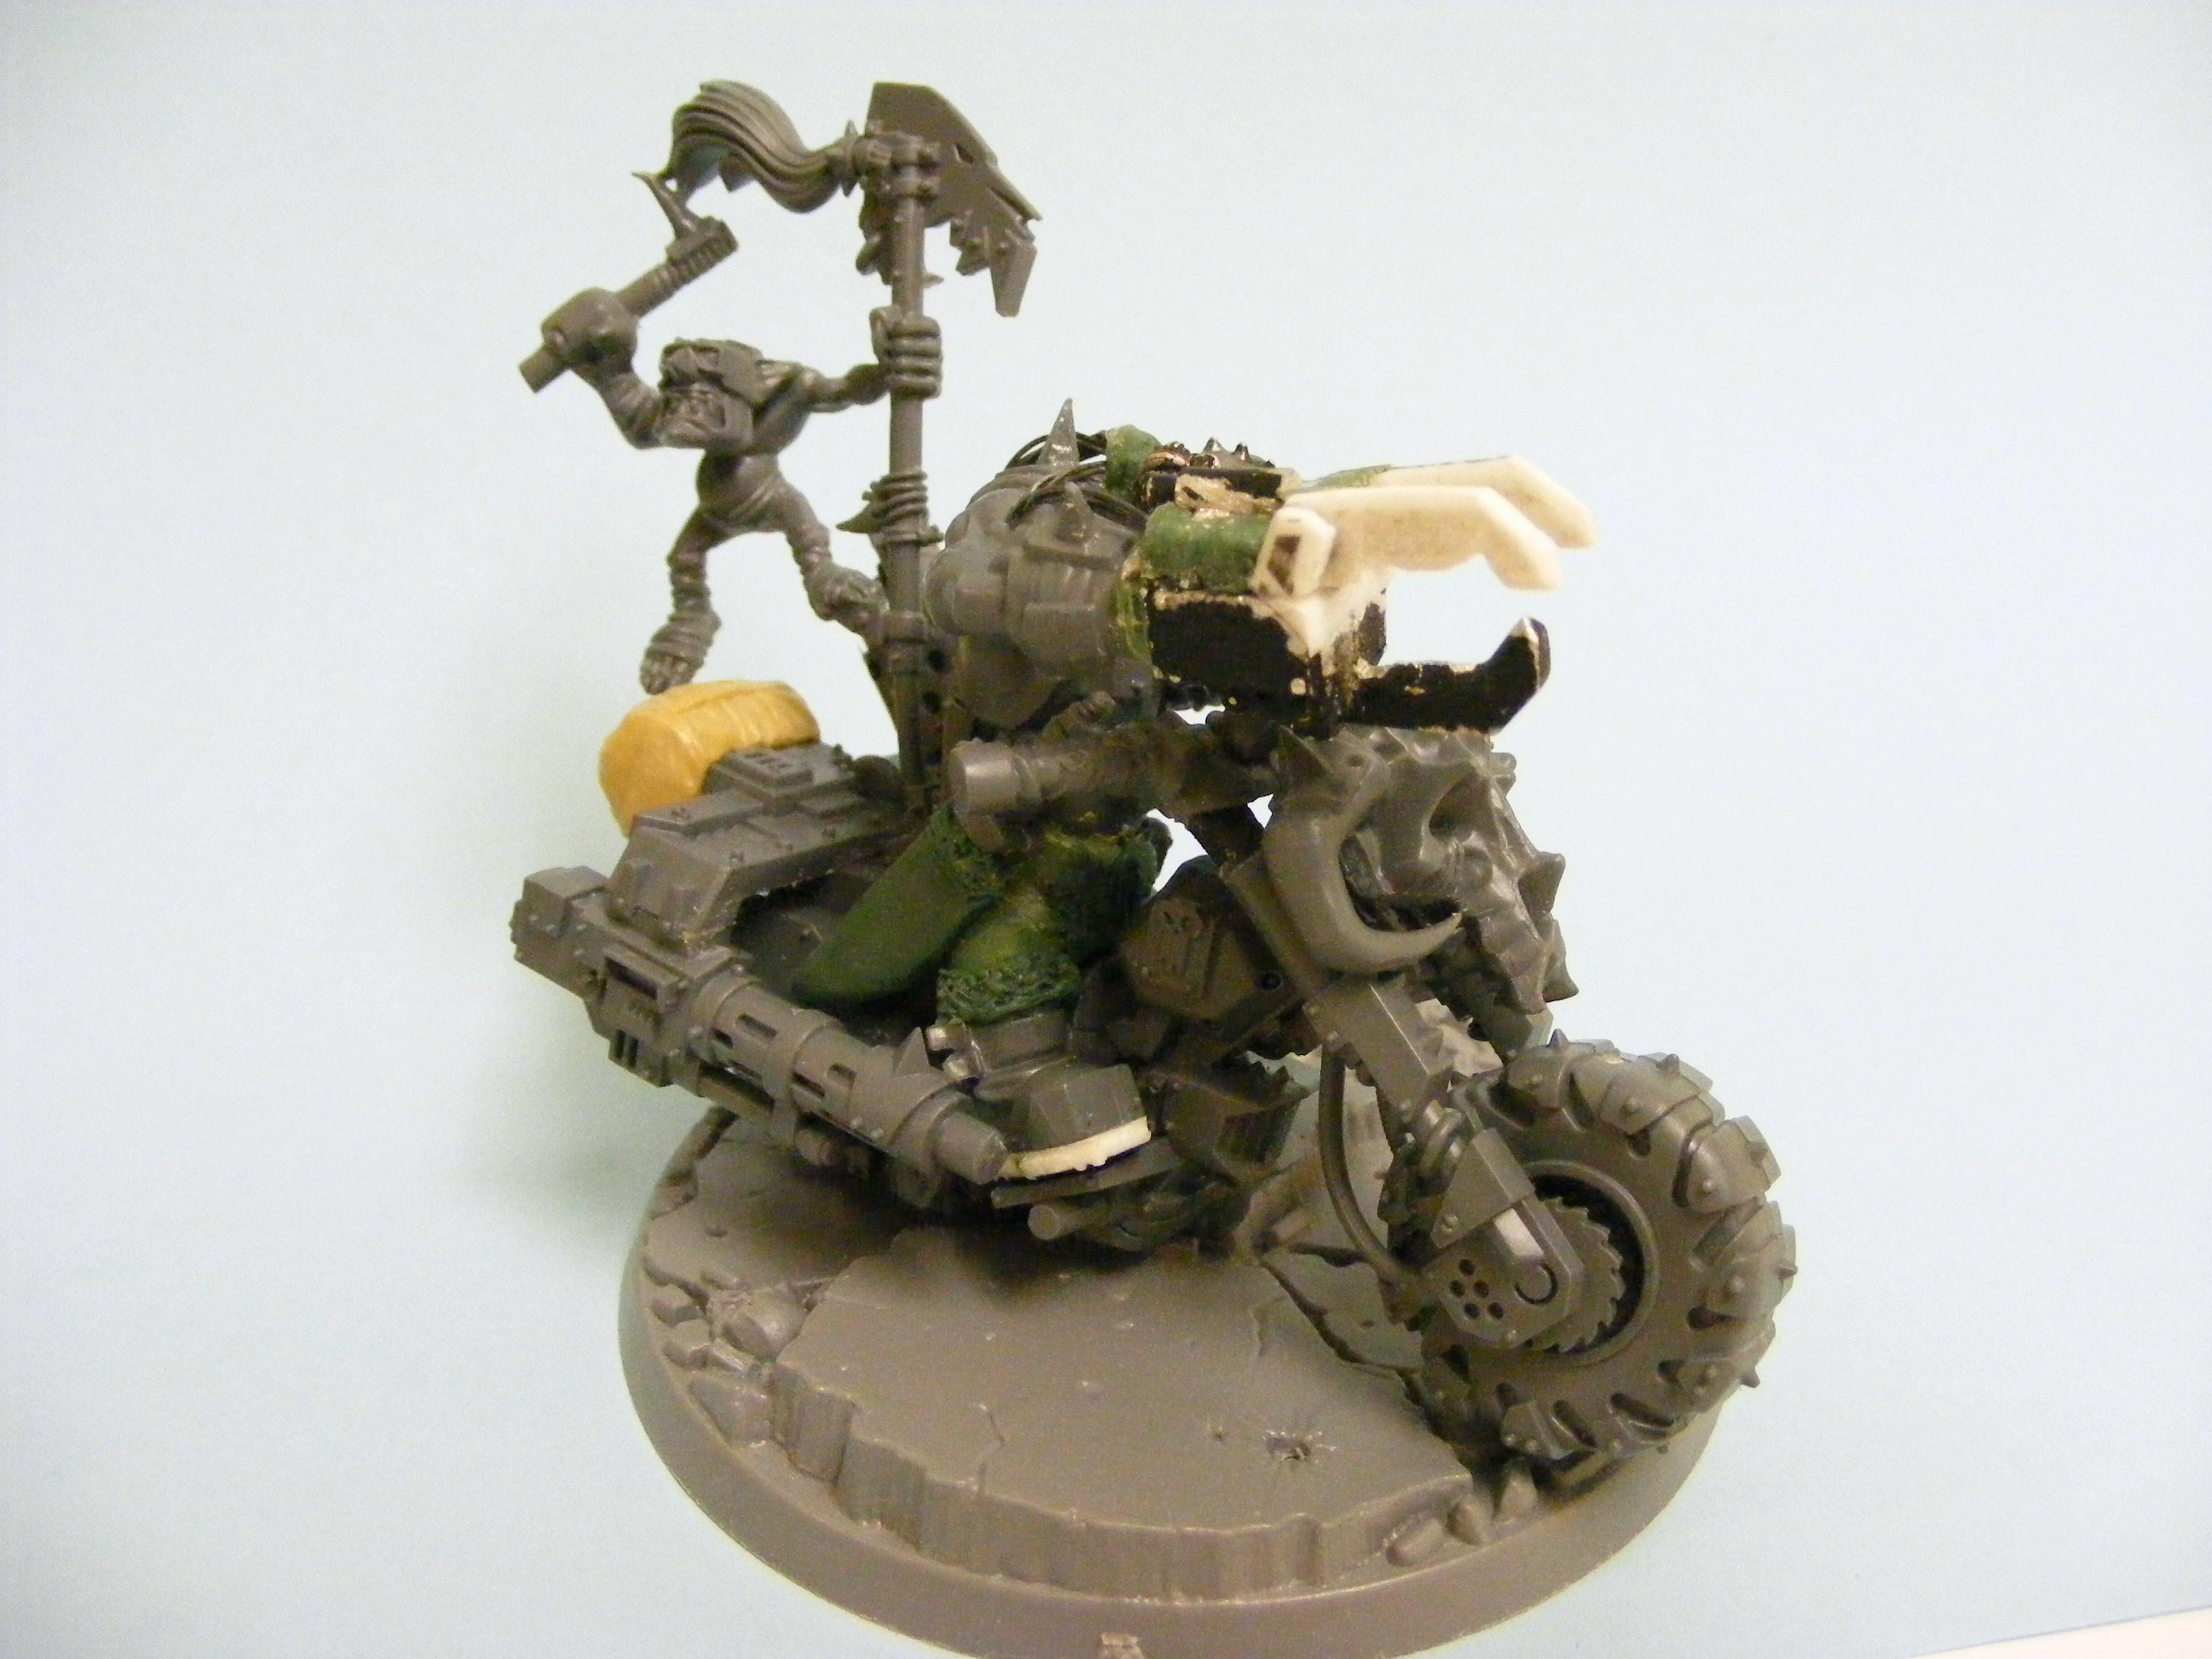 Bike, Orks, Powerklaw, Warhammer 40,000